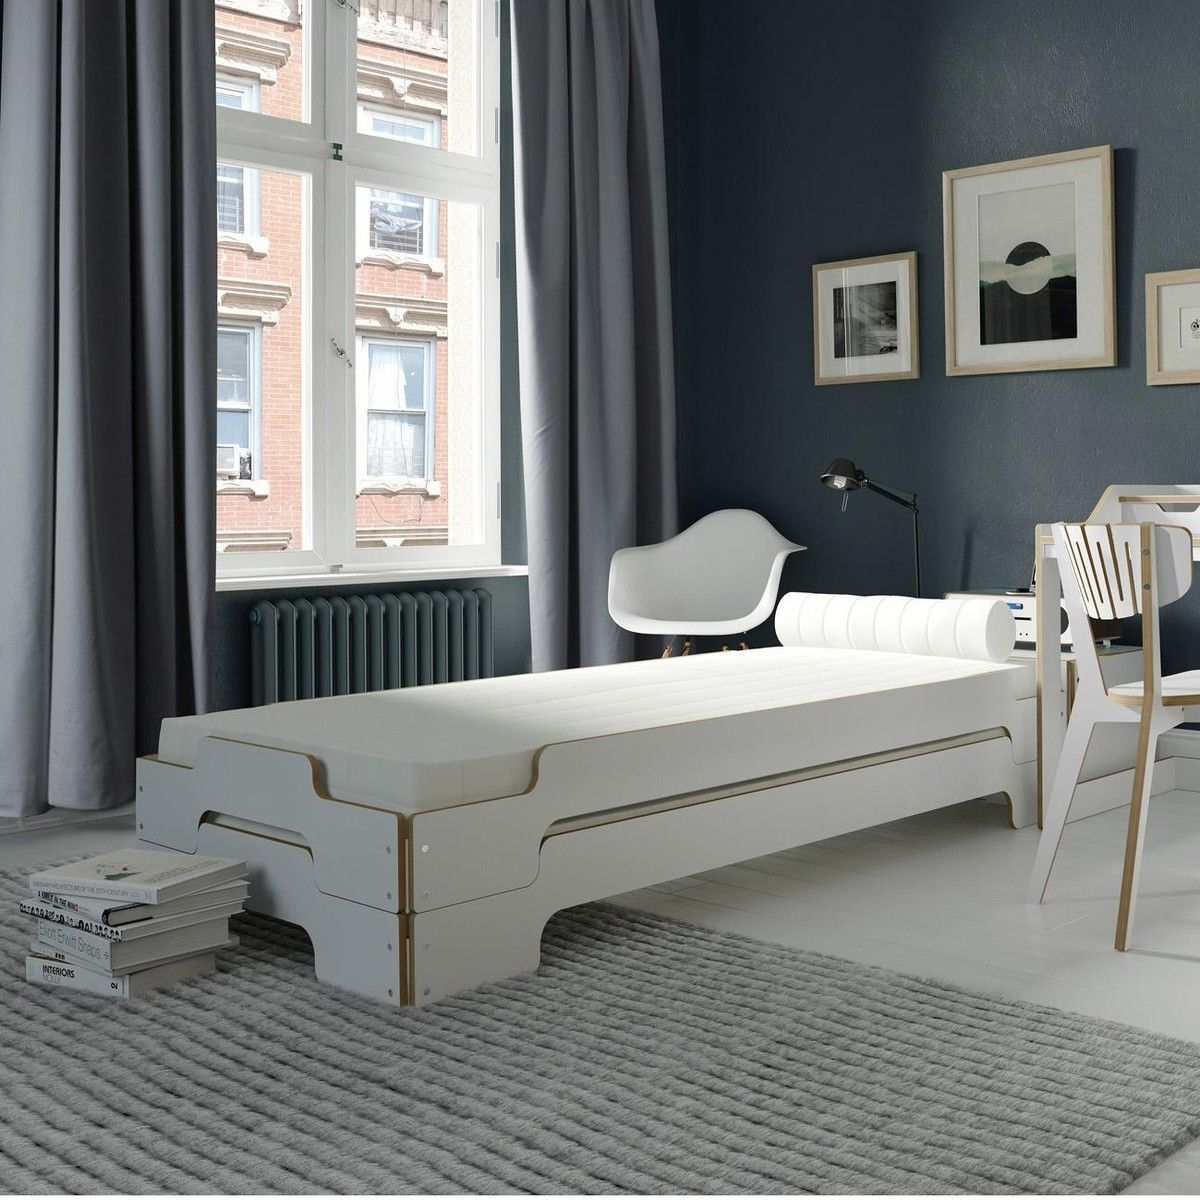 rolf heide stapelliege m ller m belwerkst tten. Black Bedroom Furniture Sets. Home Design Ideas